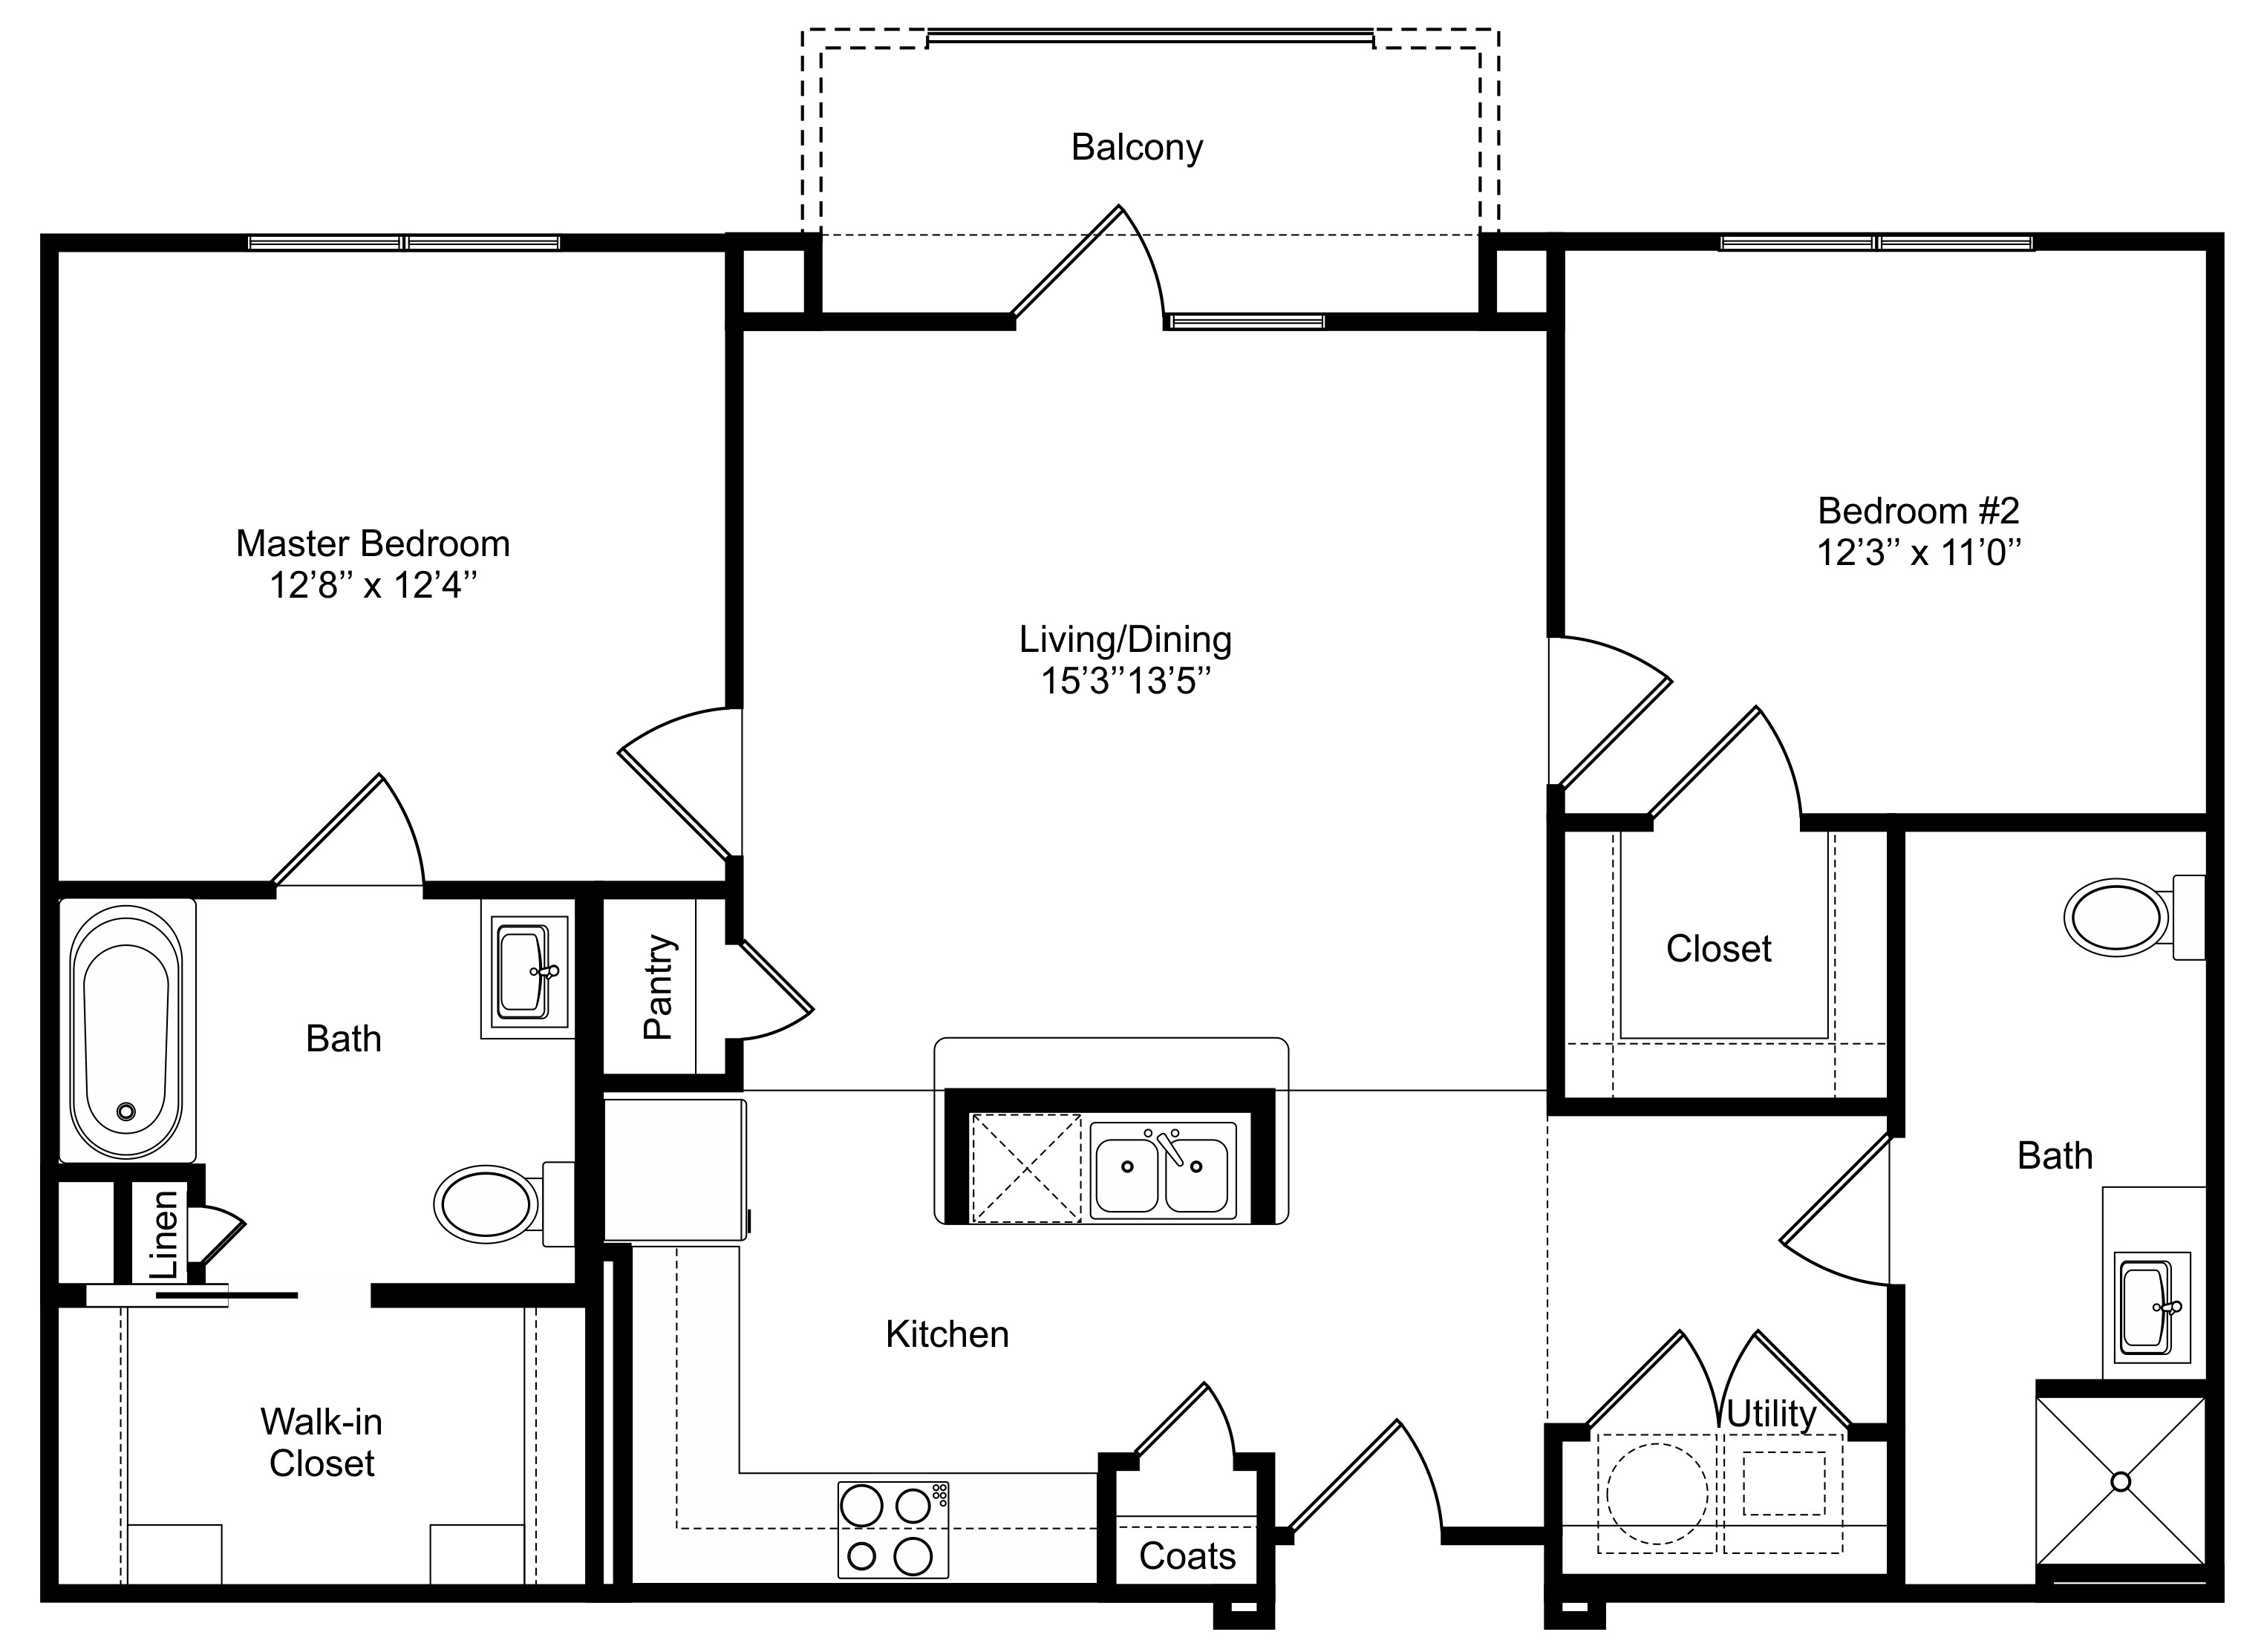 Oxford at Lake View - Floorplan - B1a